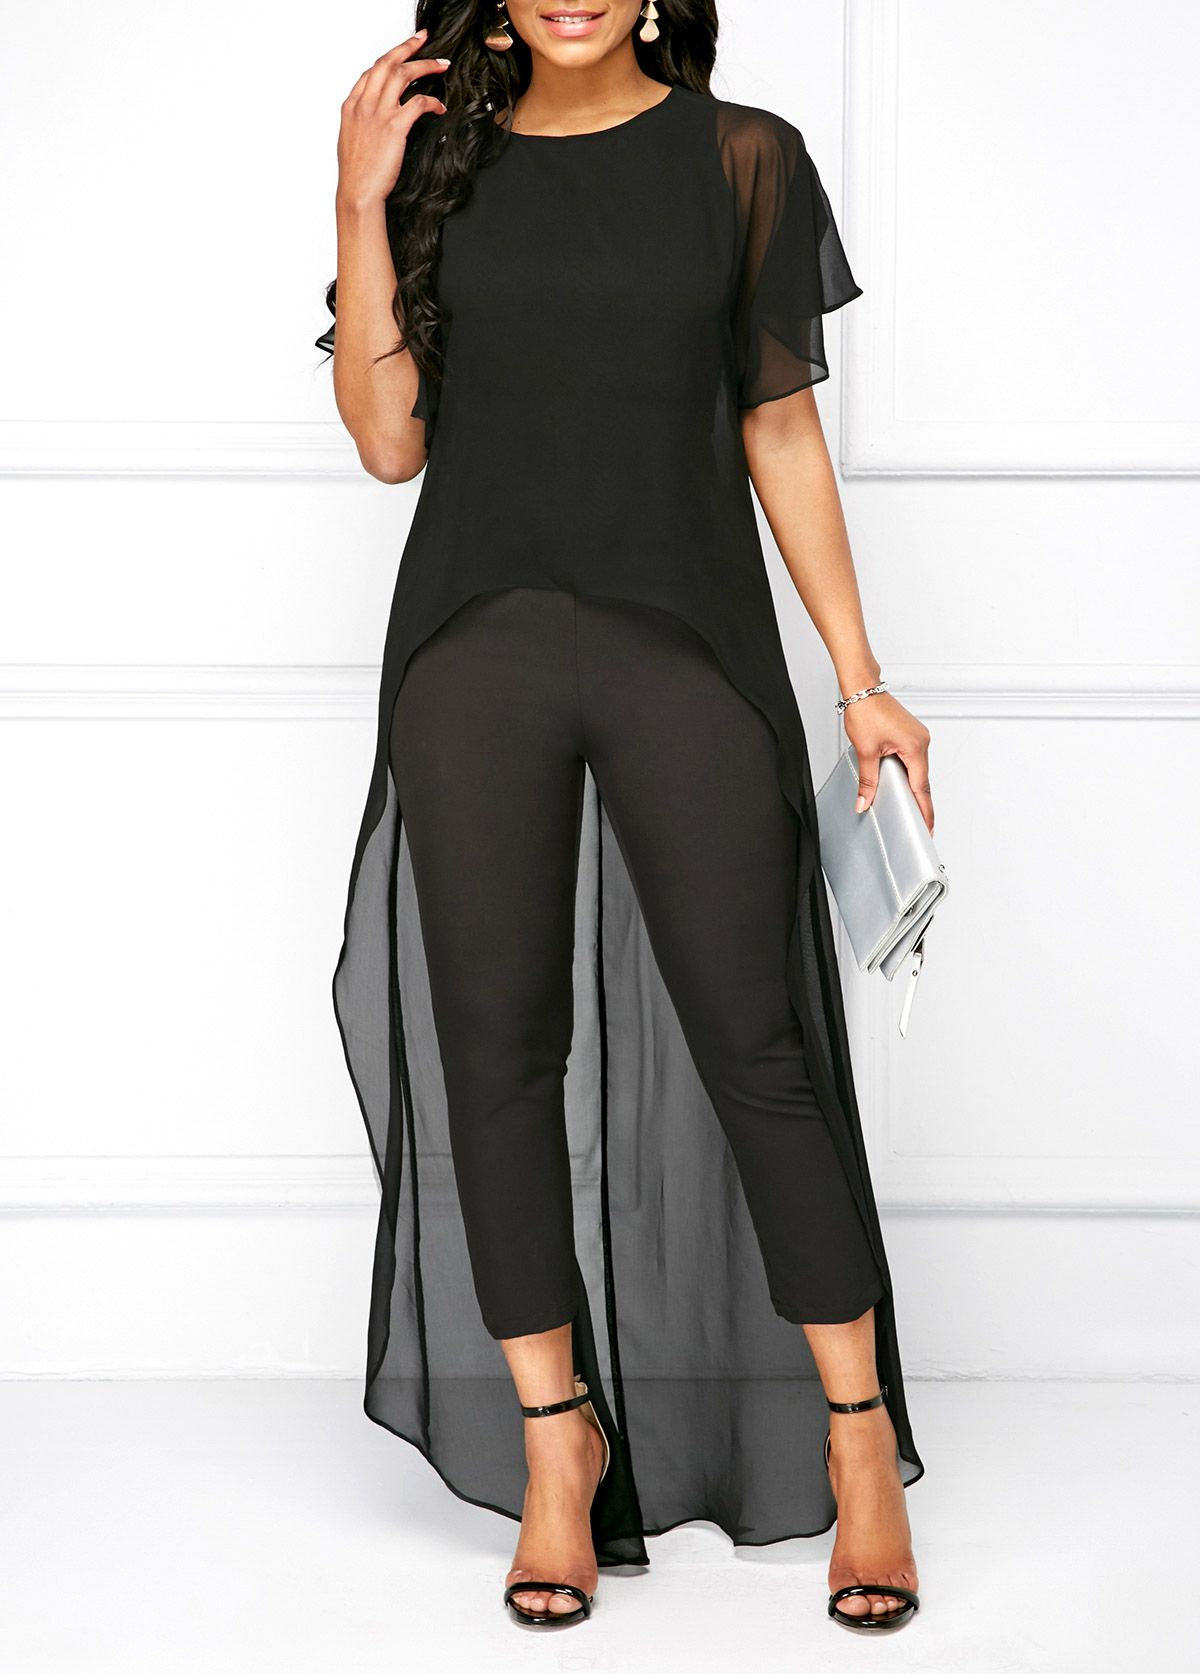 Short Sleeve Black High Low Top And Pants Rosewe Com Usd 42 51 Fashion Fashion Bottoms Fashion Dress Party